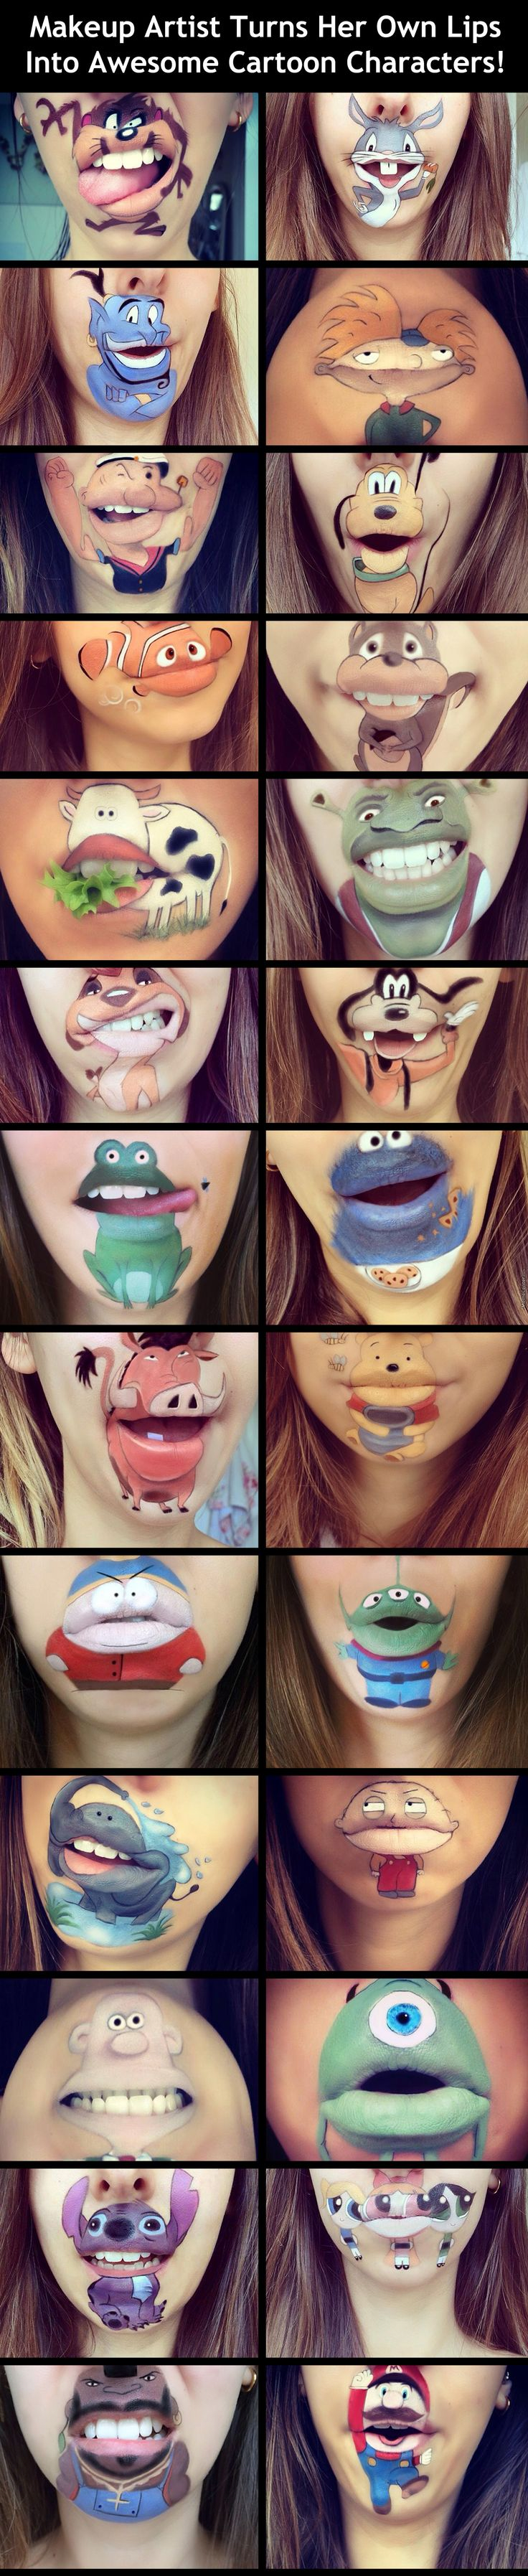 Makeup artist turns her own lips into awesome cartoon characters!